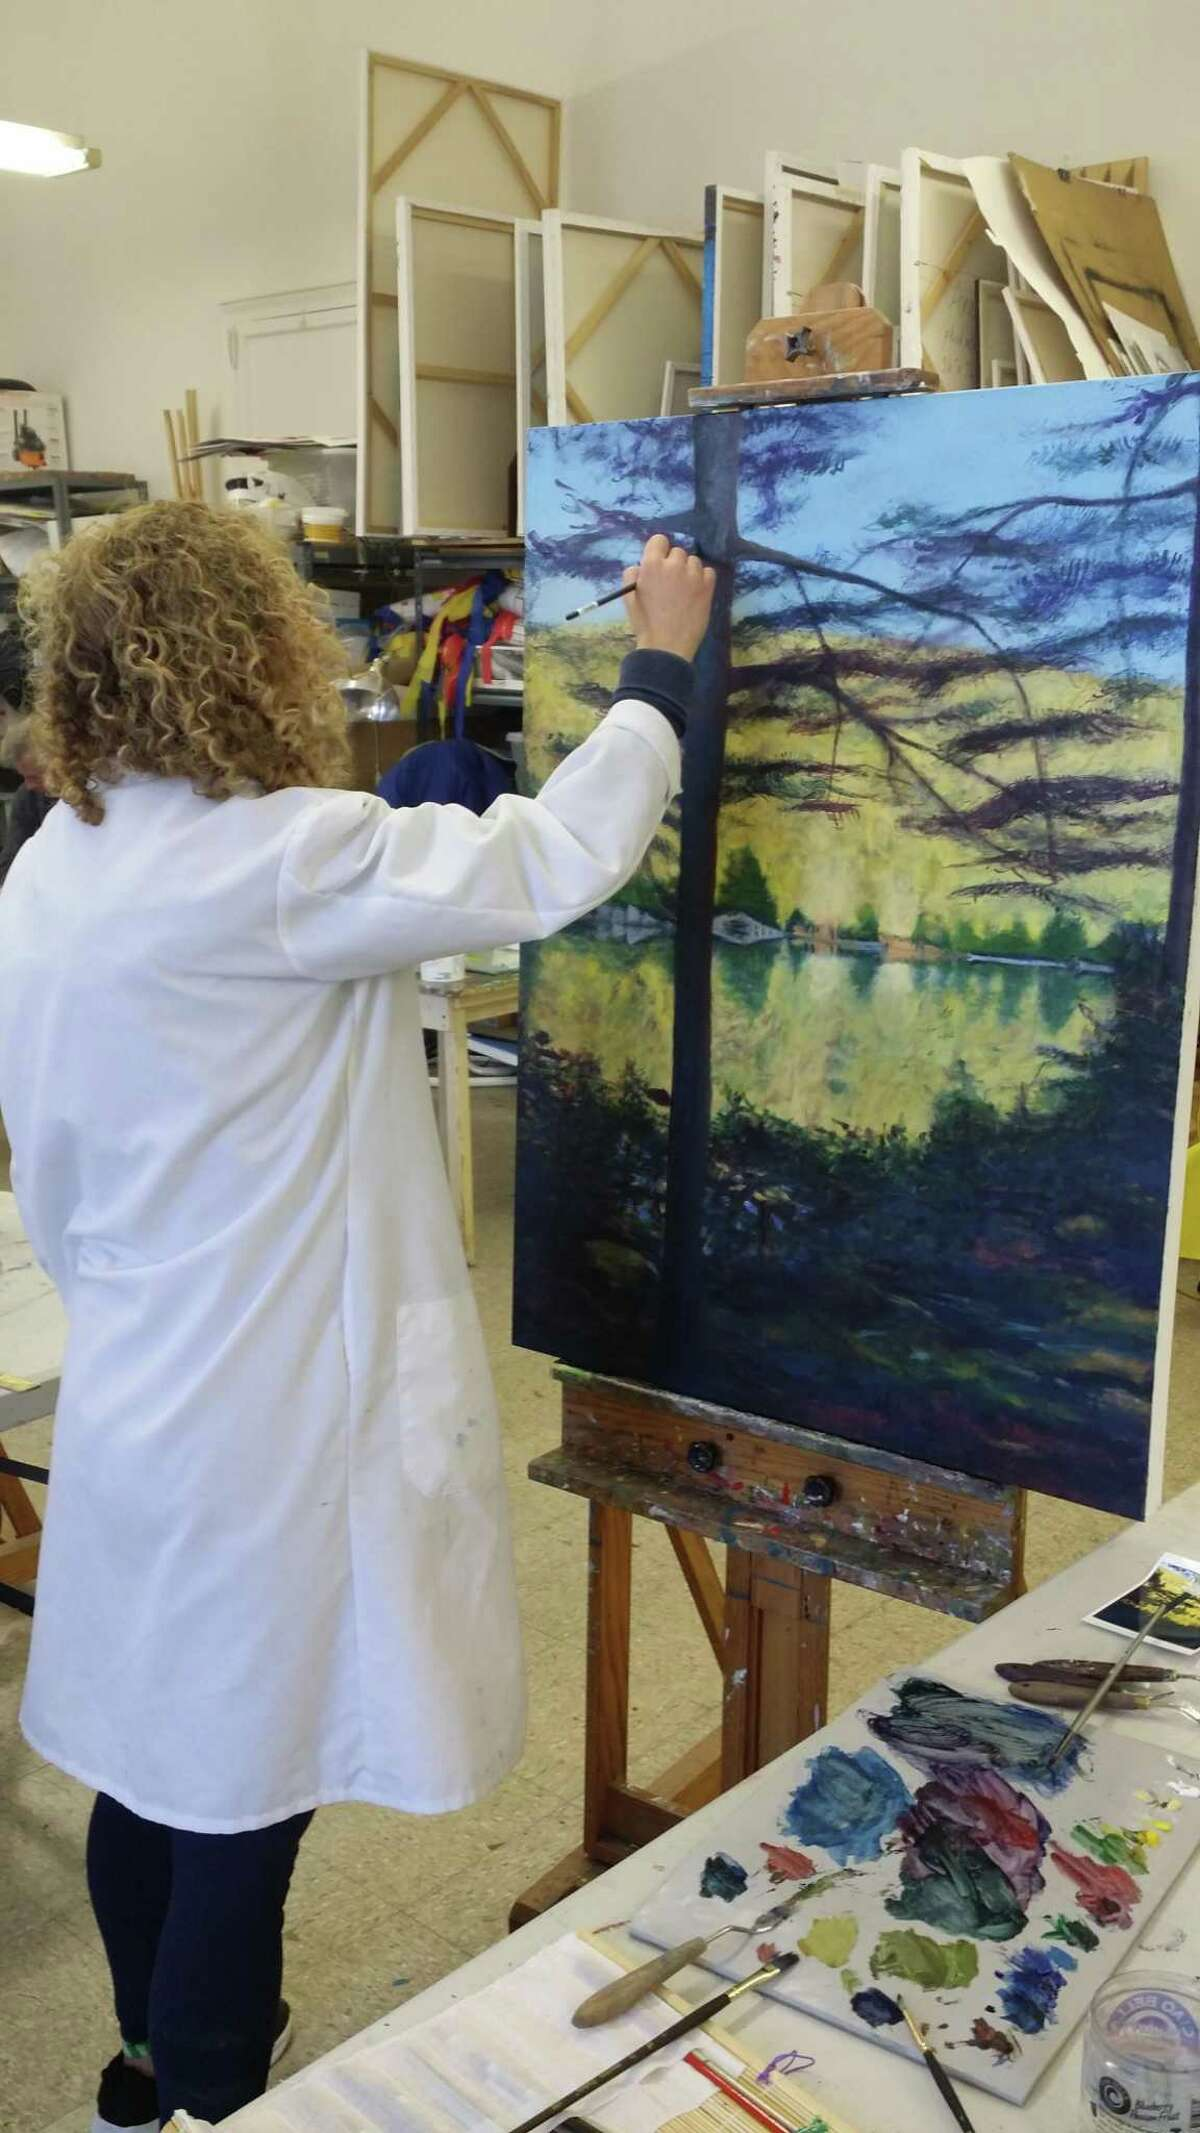 Summer classes at the Greenwich Art Society start the week of July 8 and run through the end of August. Classes are held at the third floor studio in the Senior/Arts Building at 299 Greenwich Ave. Beginner to advanced level classes are offered. For more information, check the website at GreenwichArtSociety.org or call 203-629-1533.